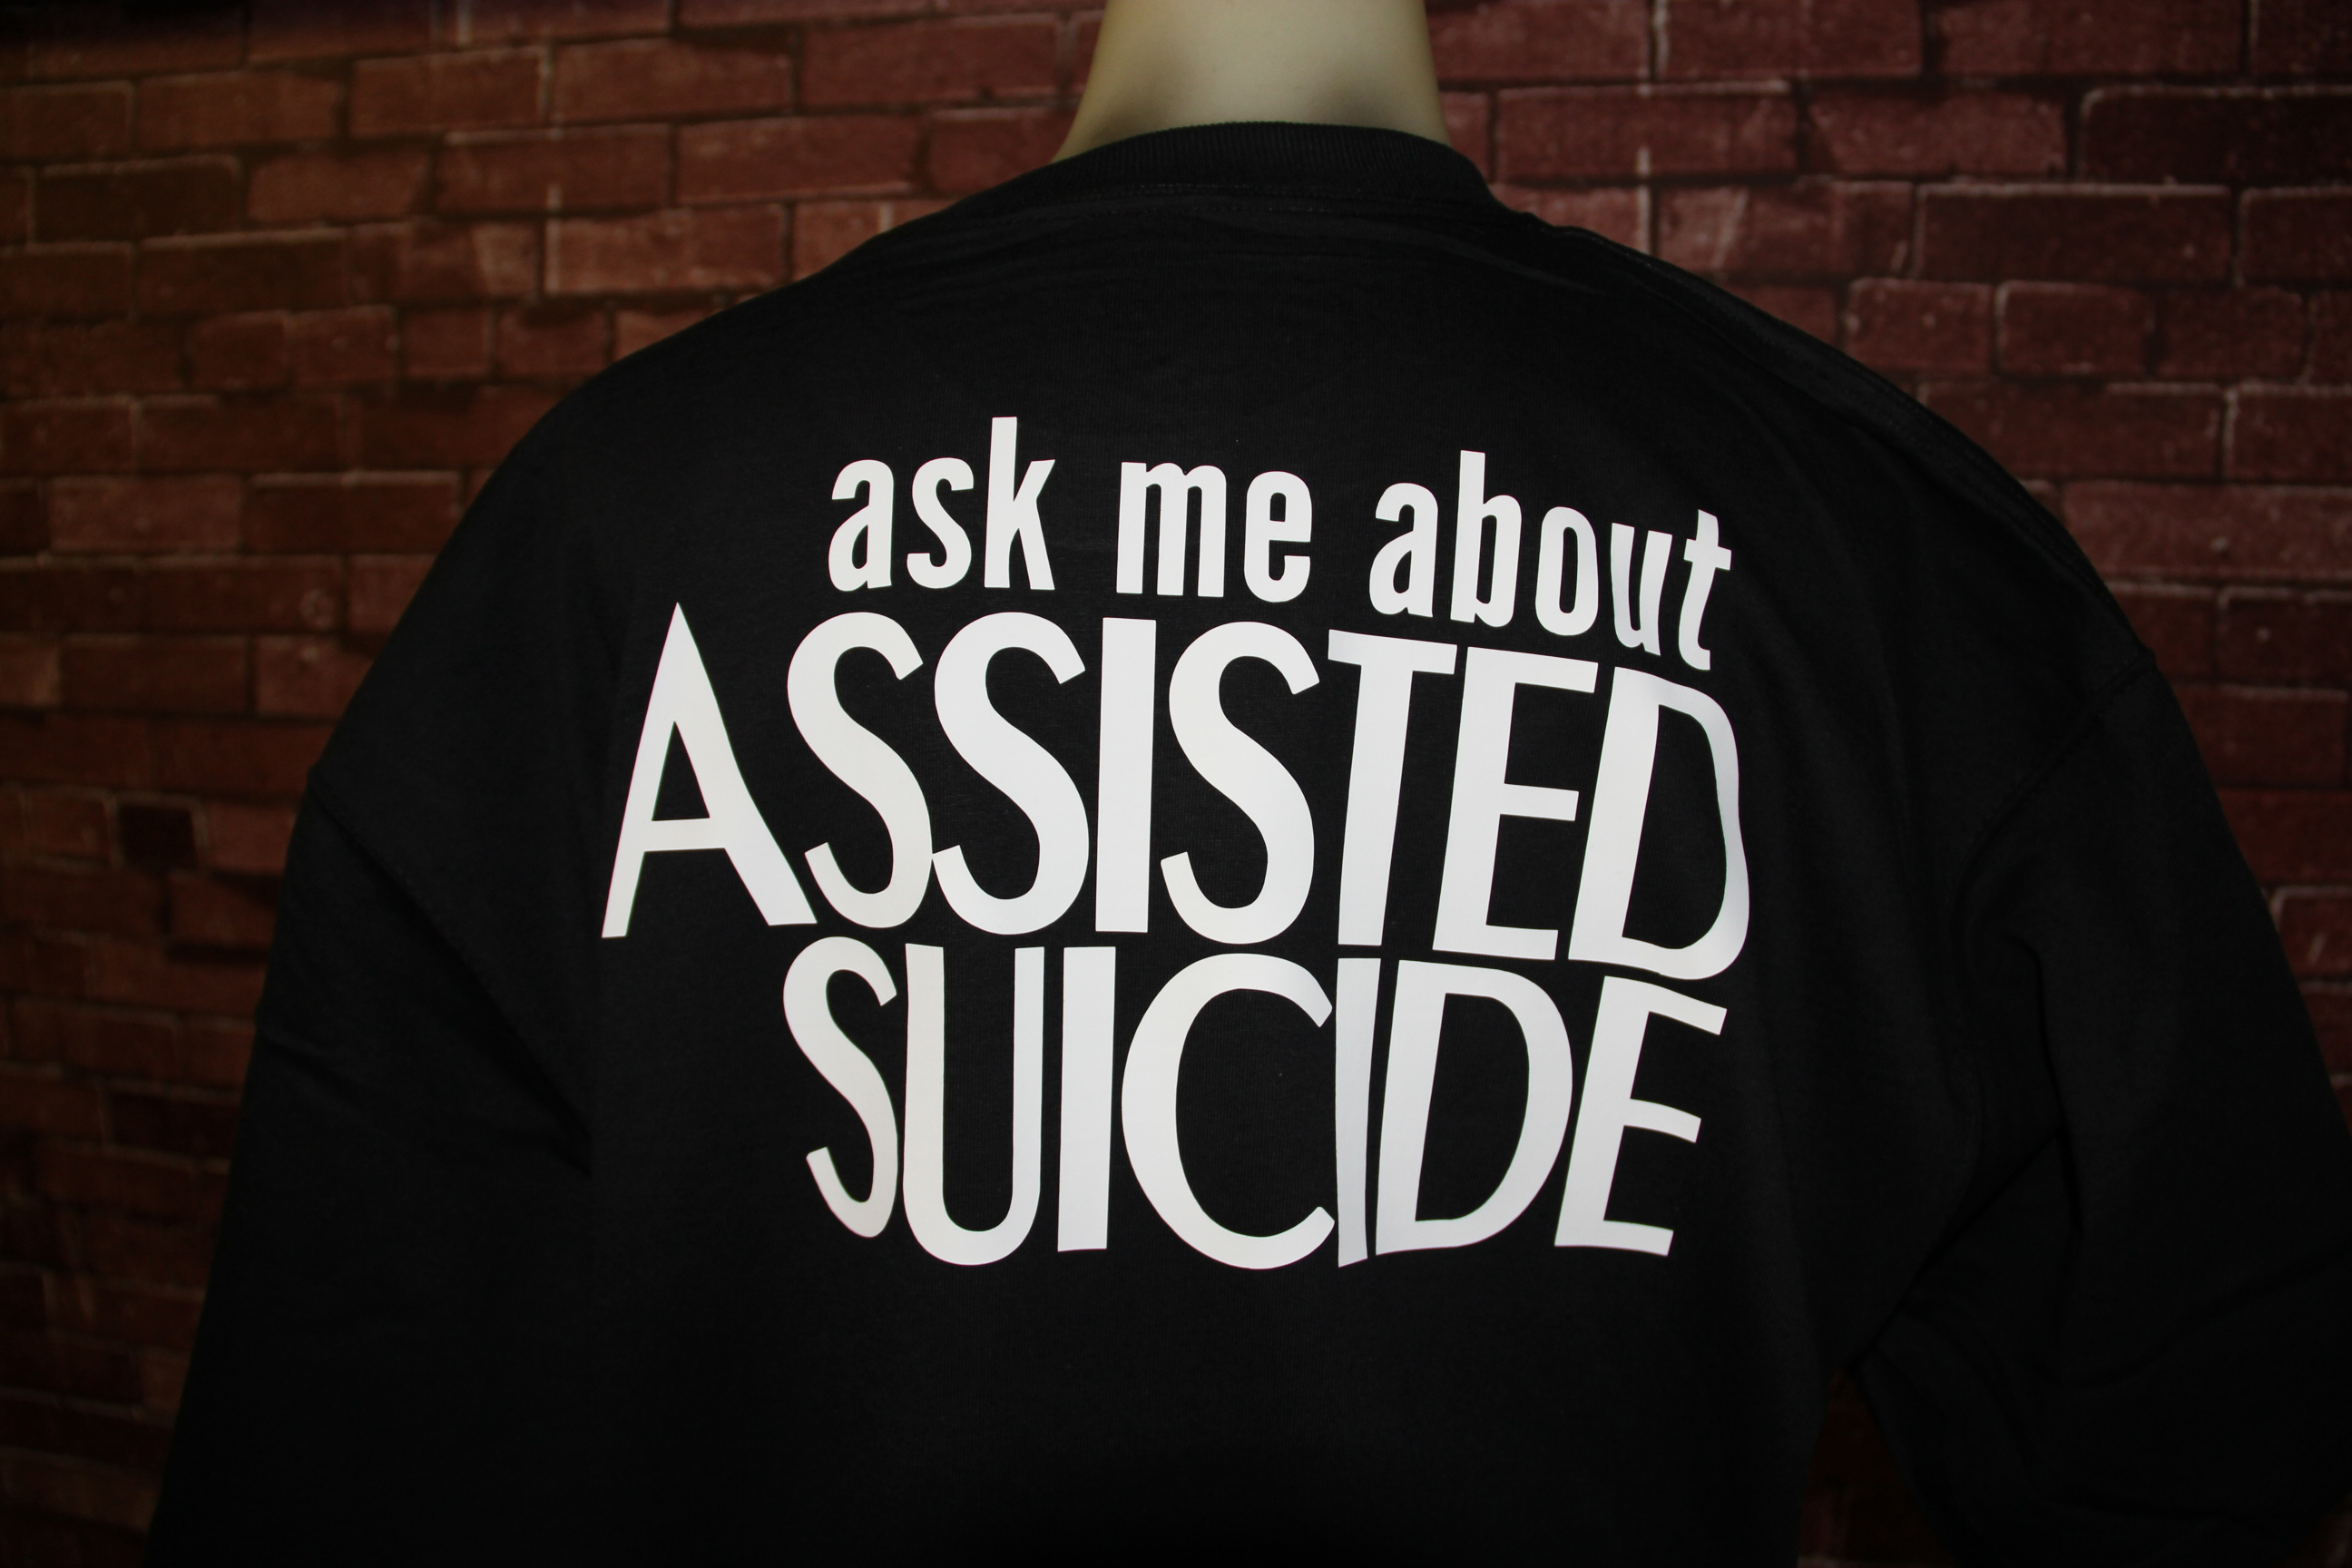 ask-me-about-assisted-suicide-t-shirts.jpg